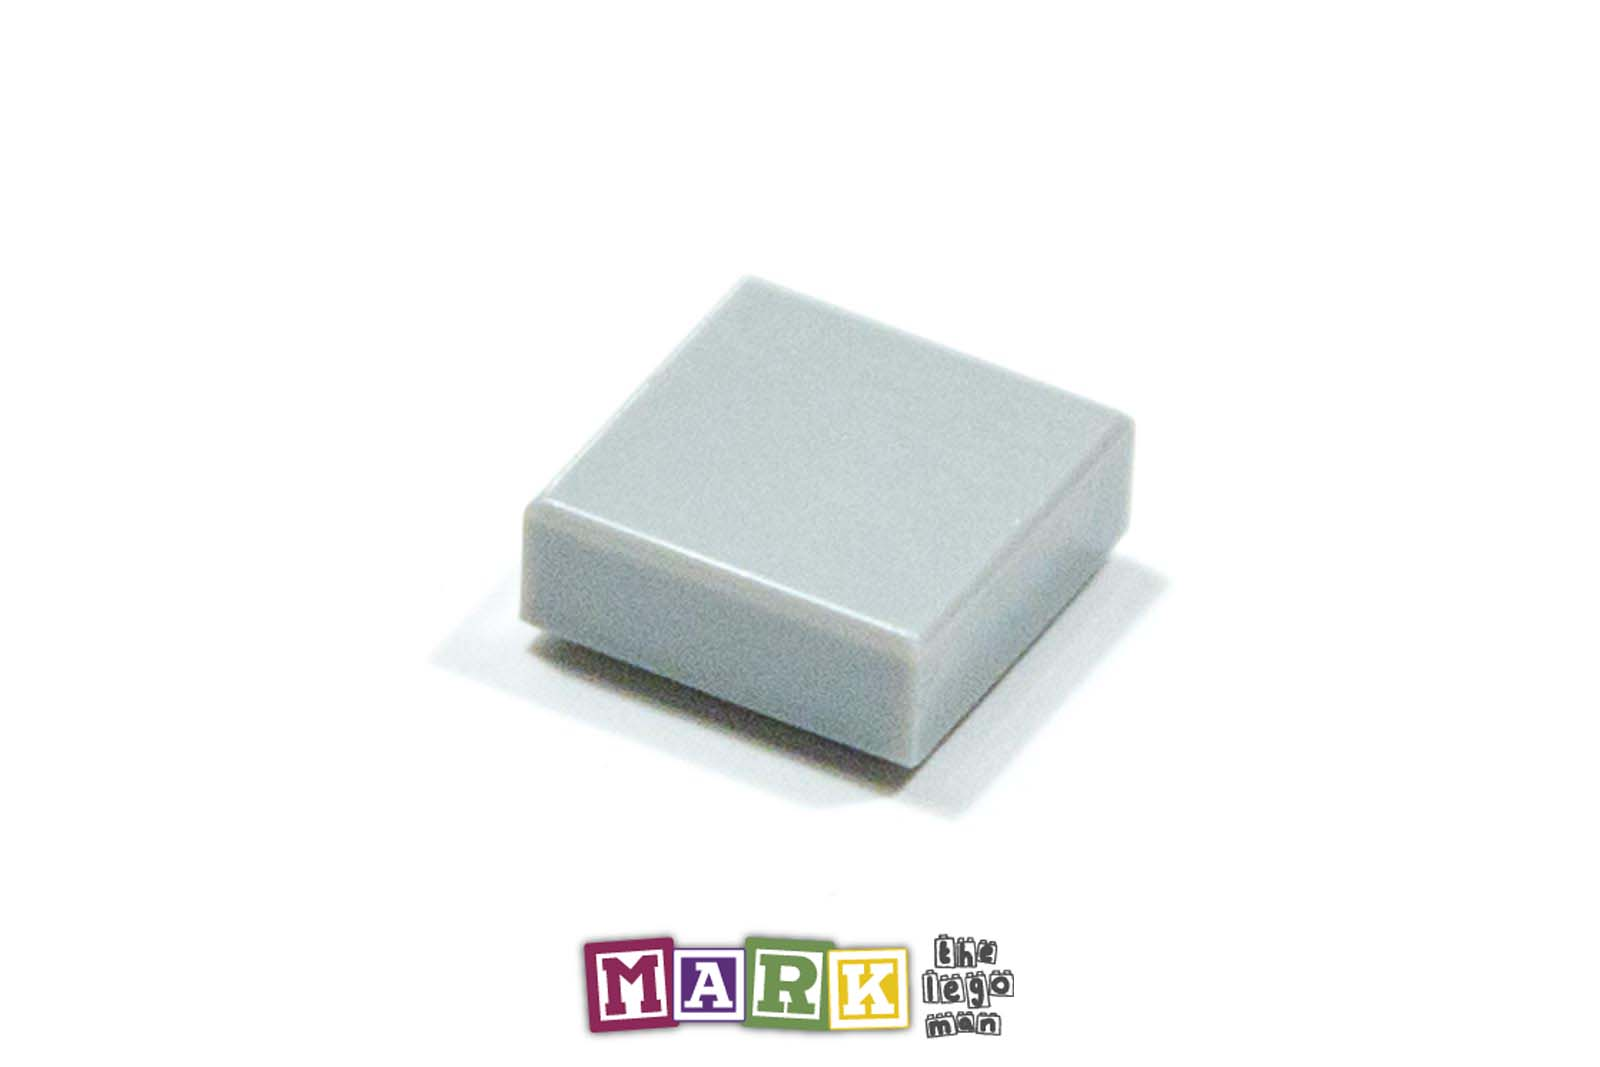 Lego 3070 1 215 1 Flat Tile 4211415 Mad About Bricks